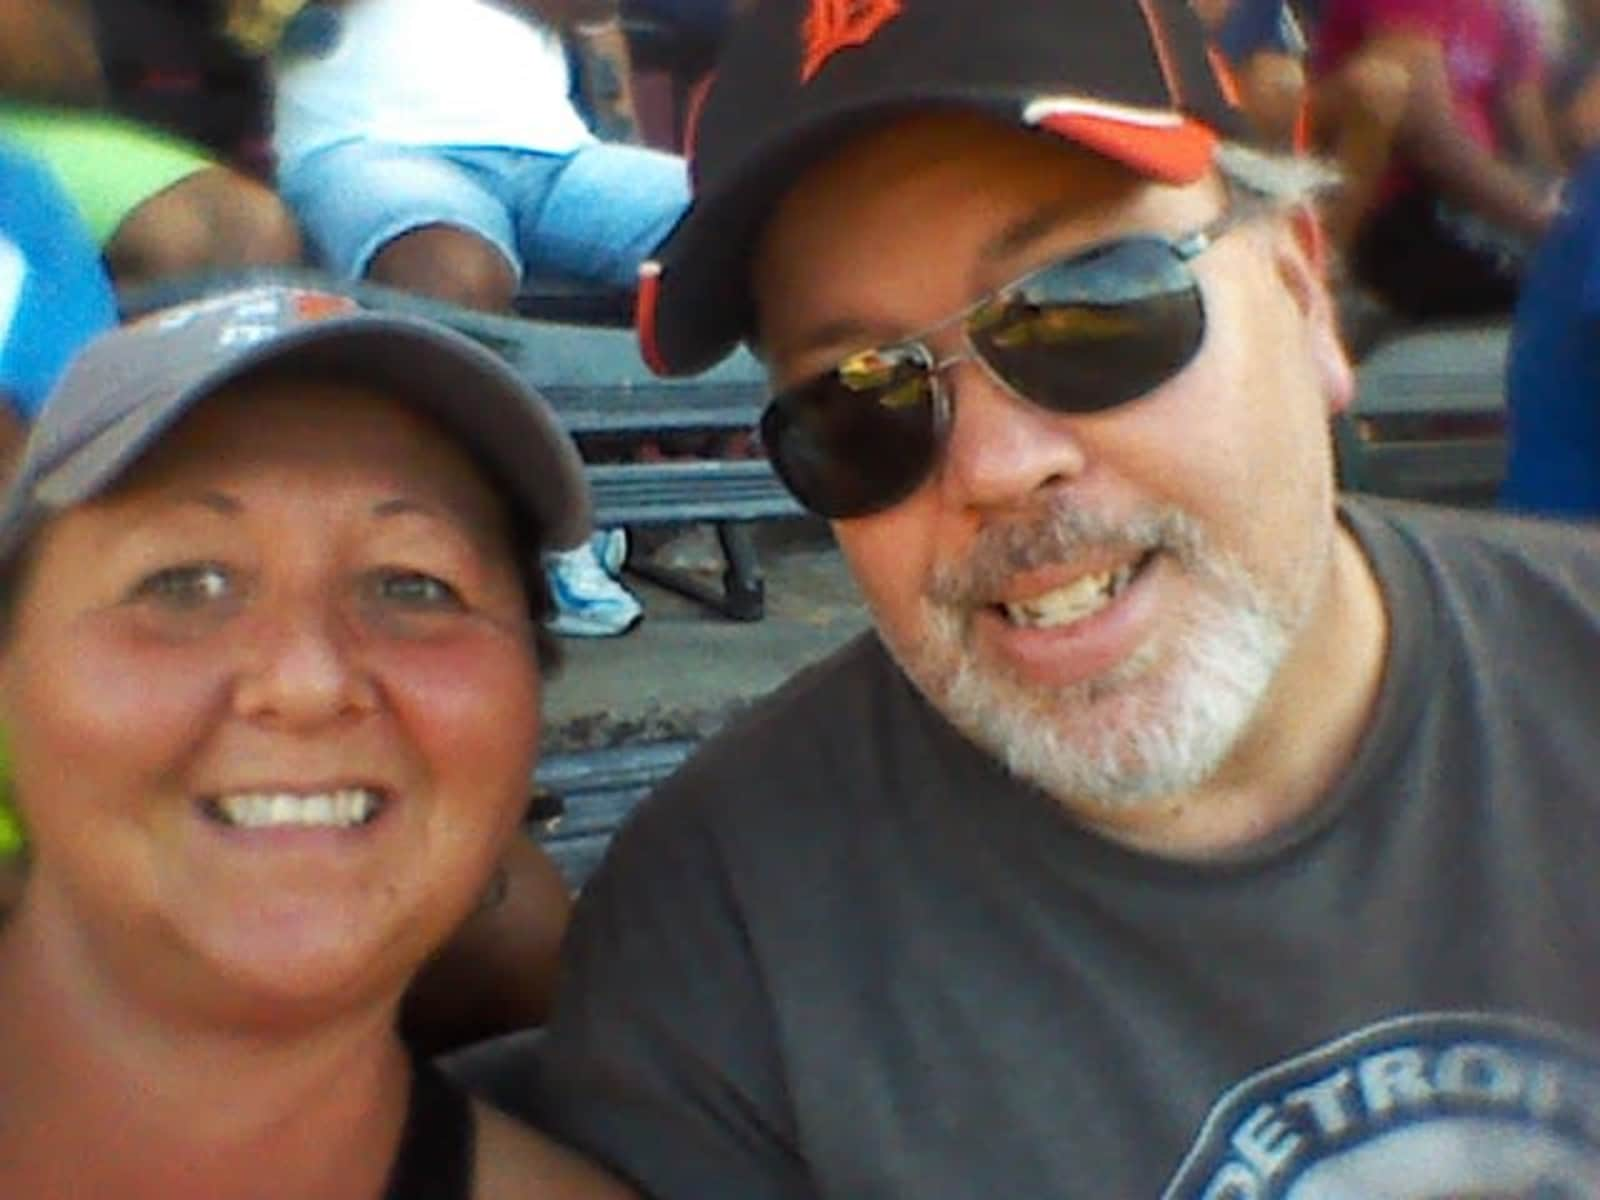 Jeff & cindy & Jeff from Kingsville, Ontario, Canada